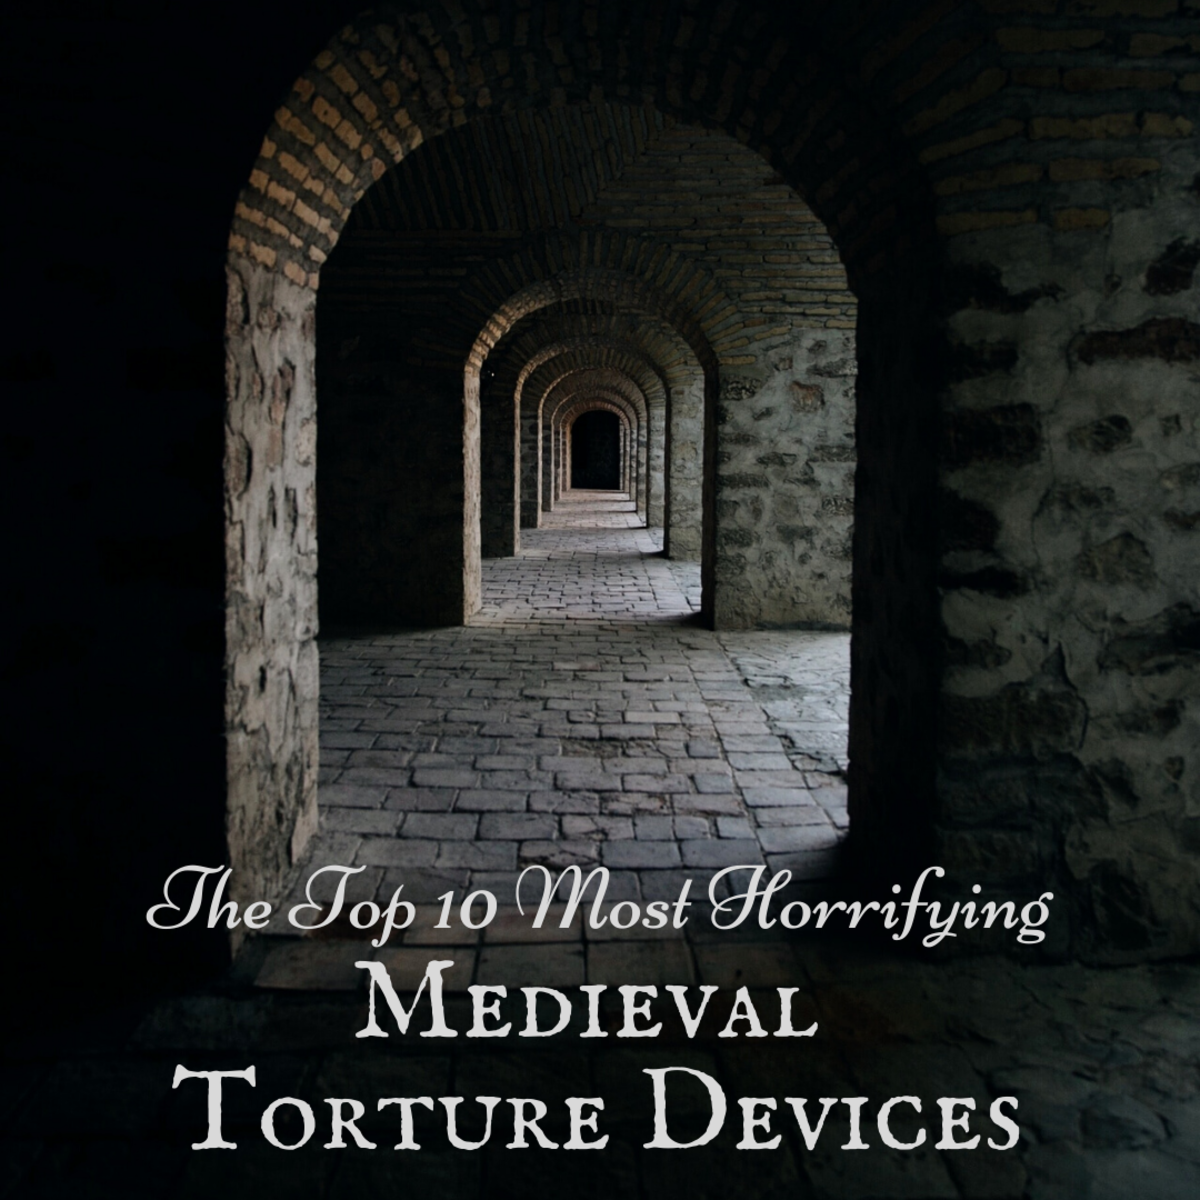 Enjoy this countdown of the most terrifying Medieval torture devices!